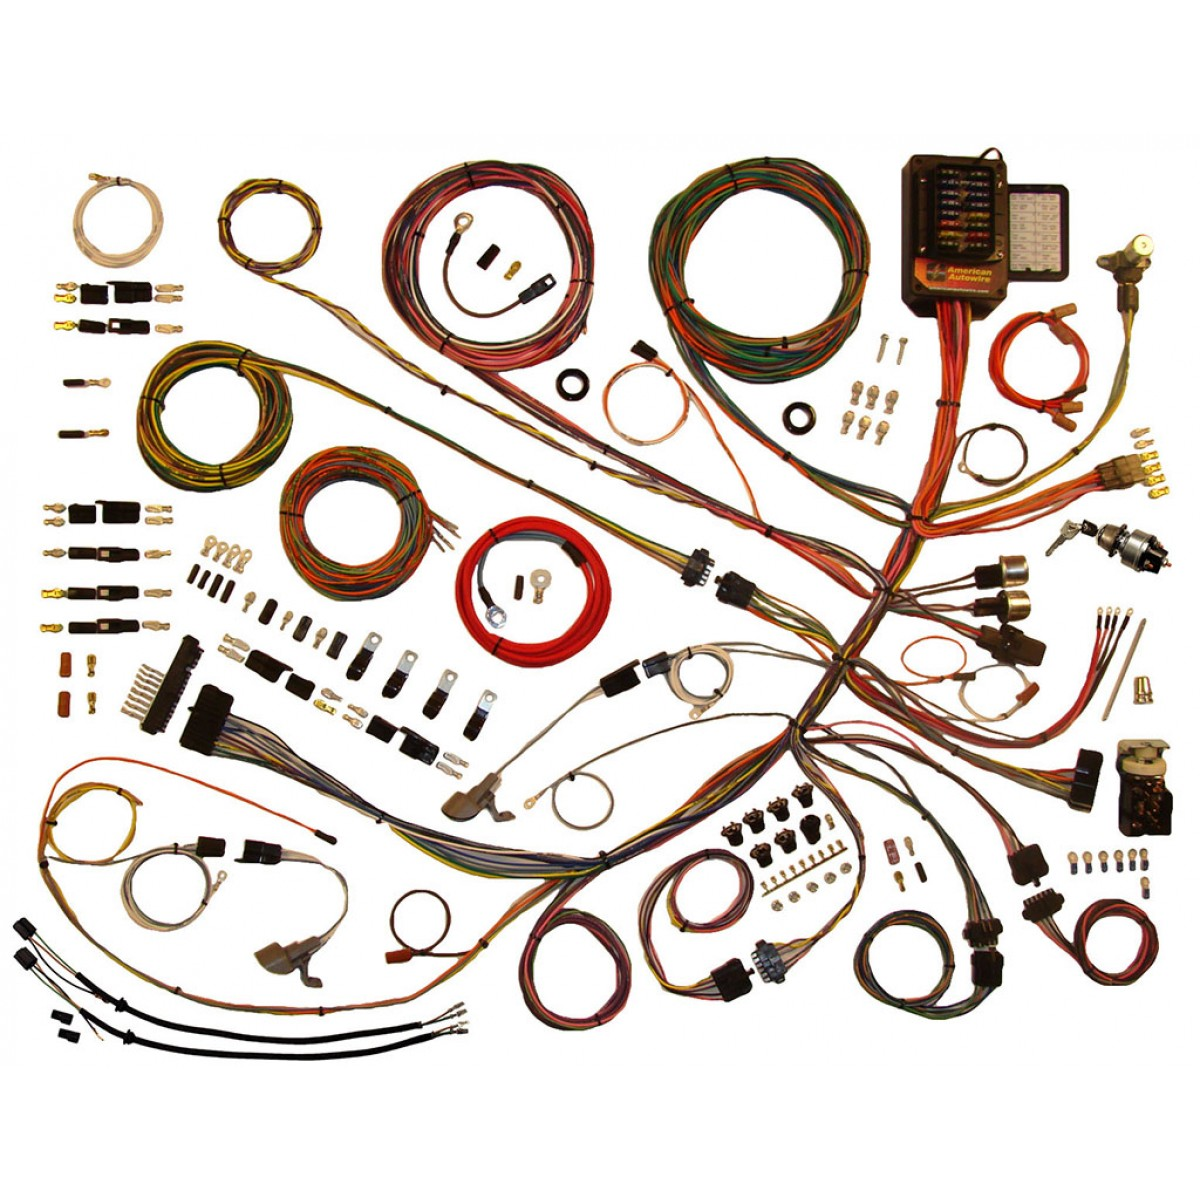 complete wiring harness kit 1953 1956 ford f100 part 510303 ford truck wiring harness f100 1953 1956 ford f100 wiring harness complete wiring harness kit ford wiring harness kits at n-0.co